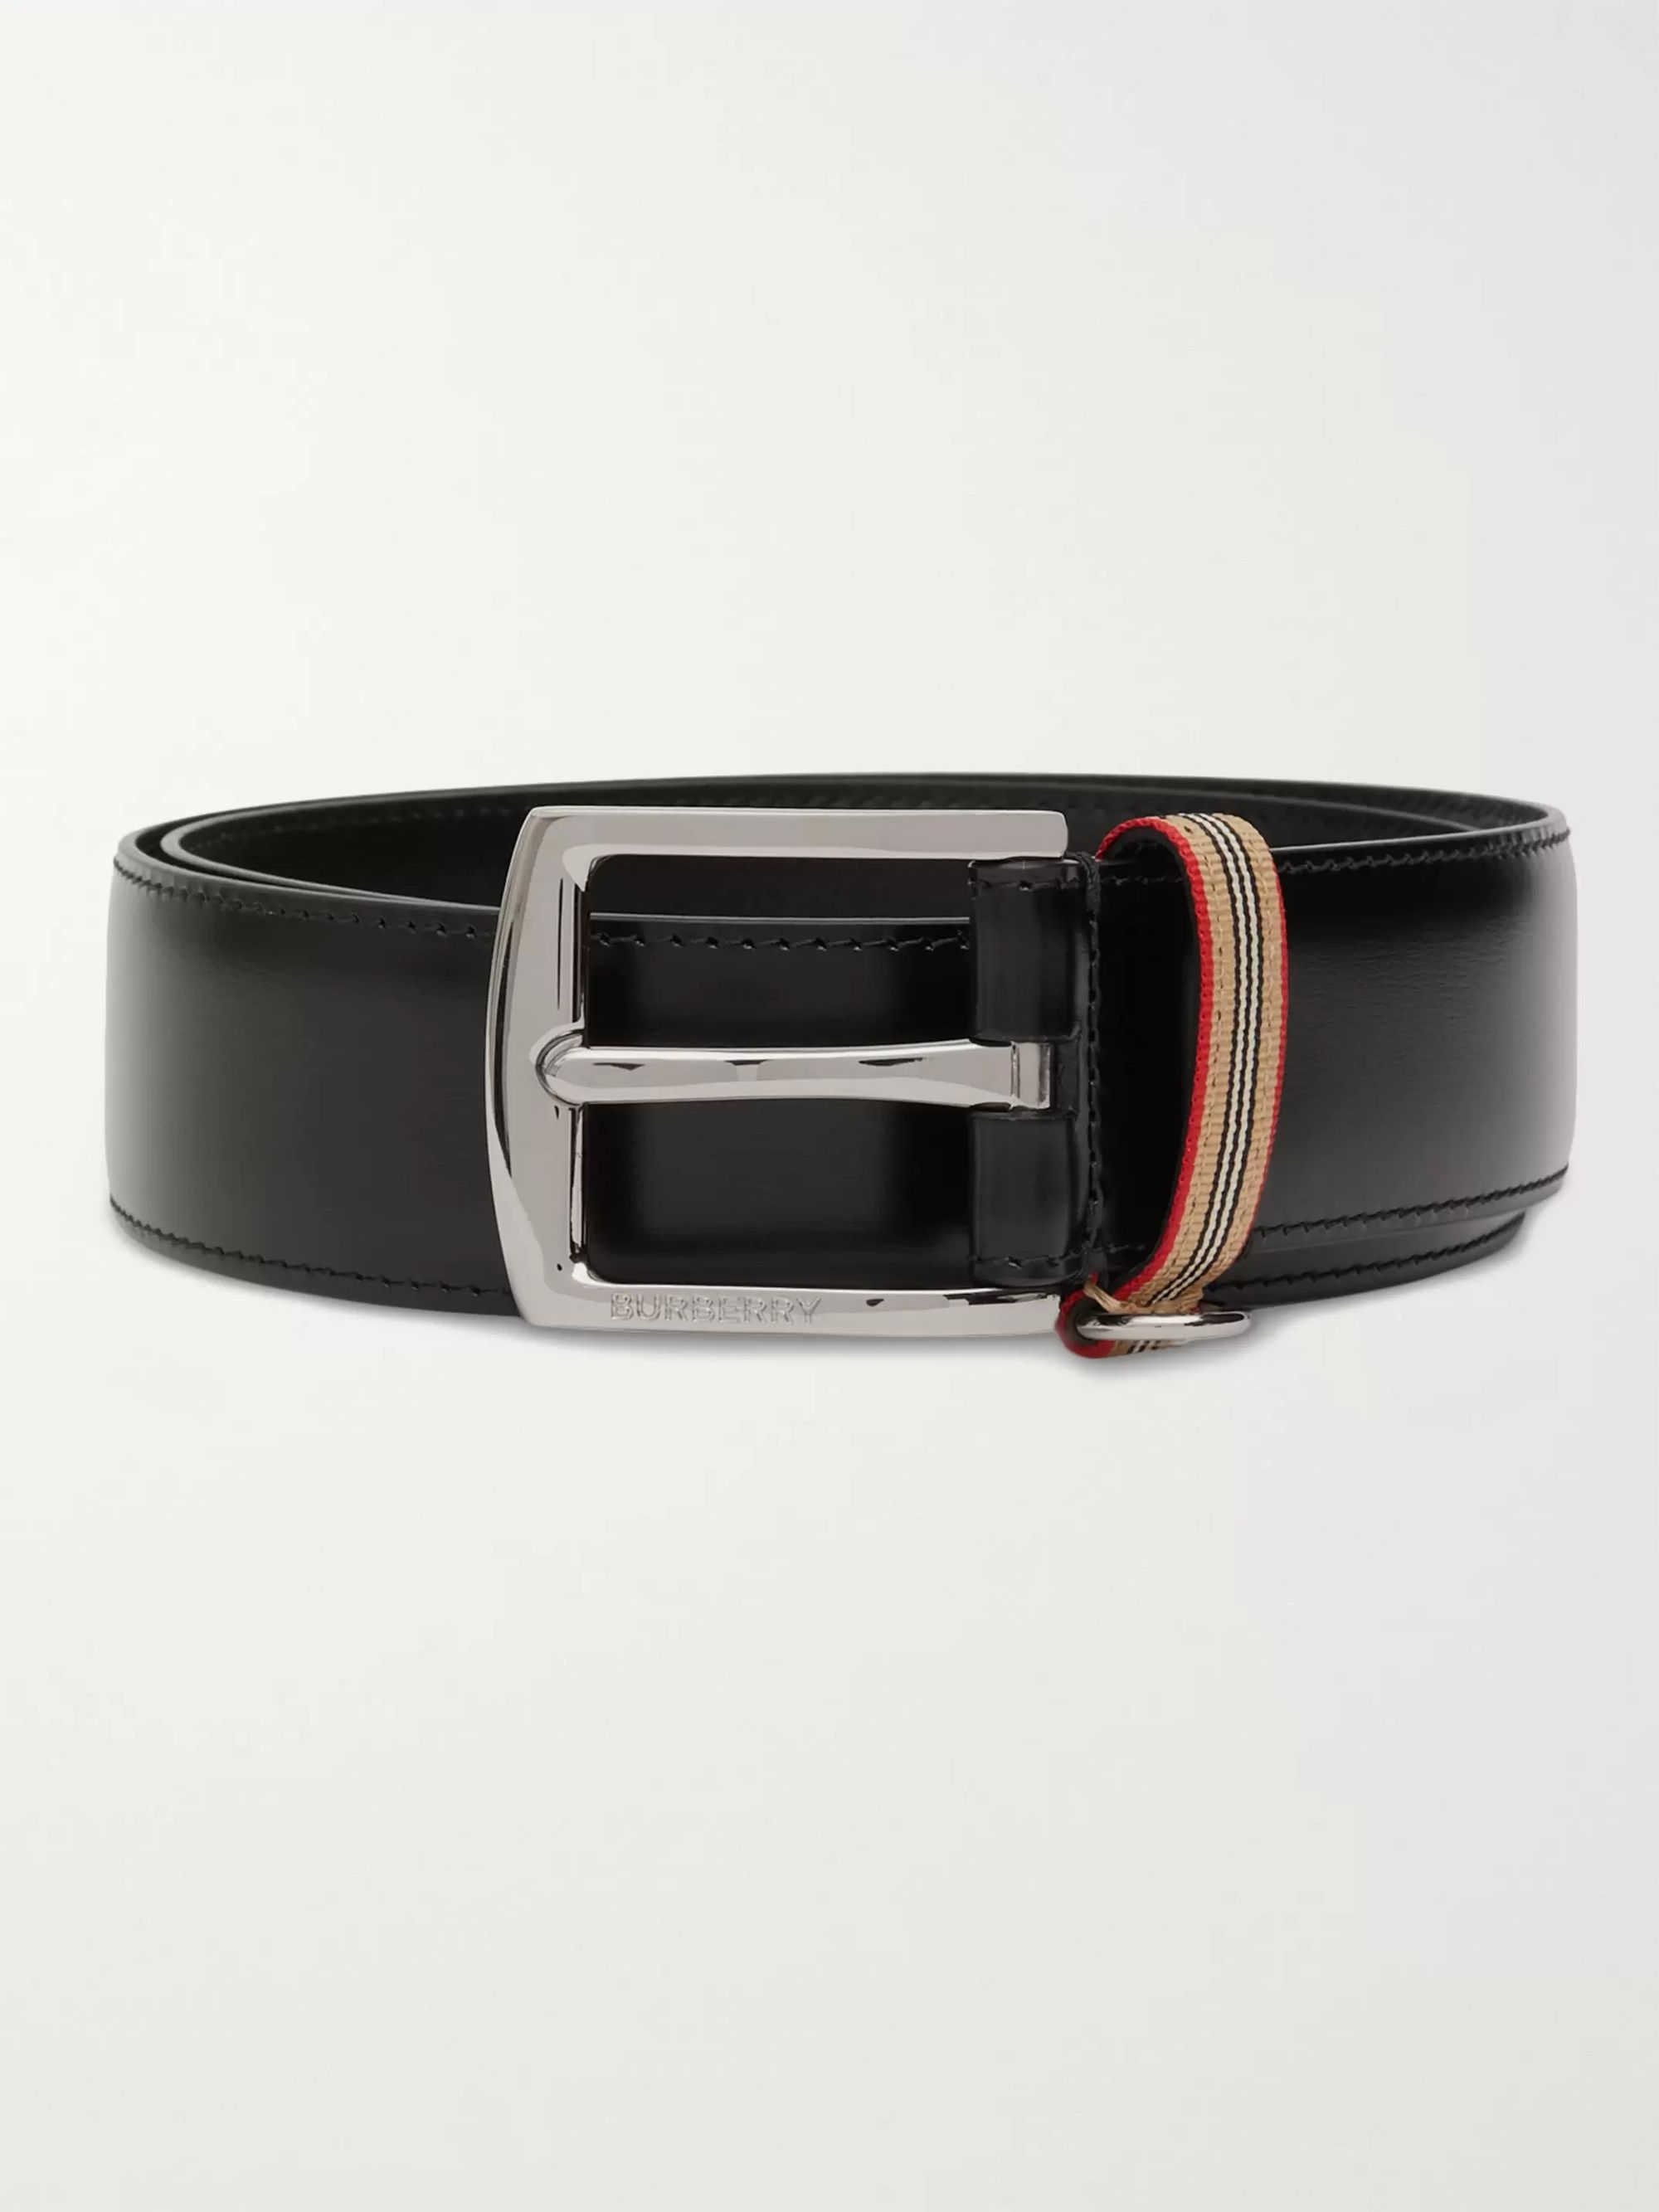 Burberry 3.5cm Striped Webbing-Trimmed Leather Belt